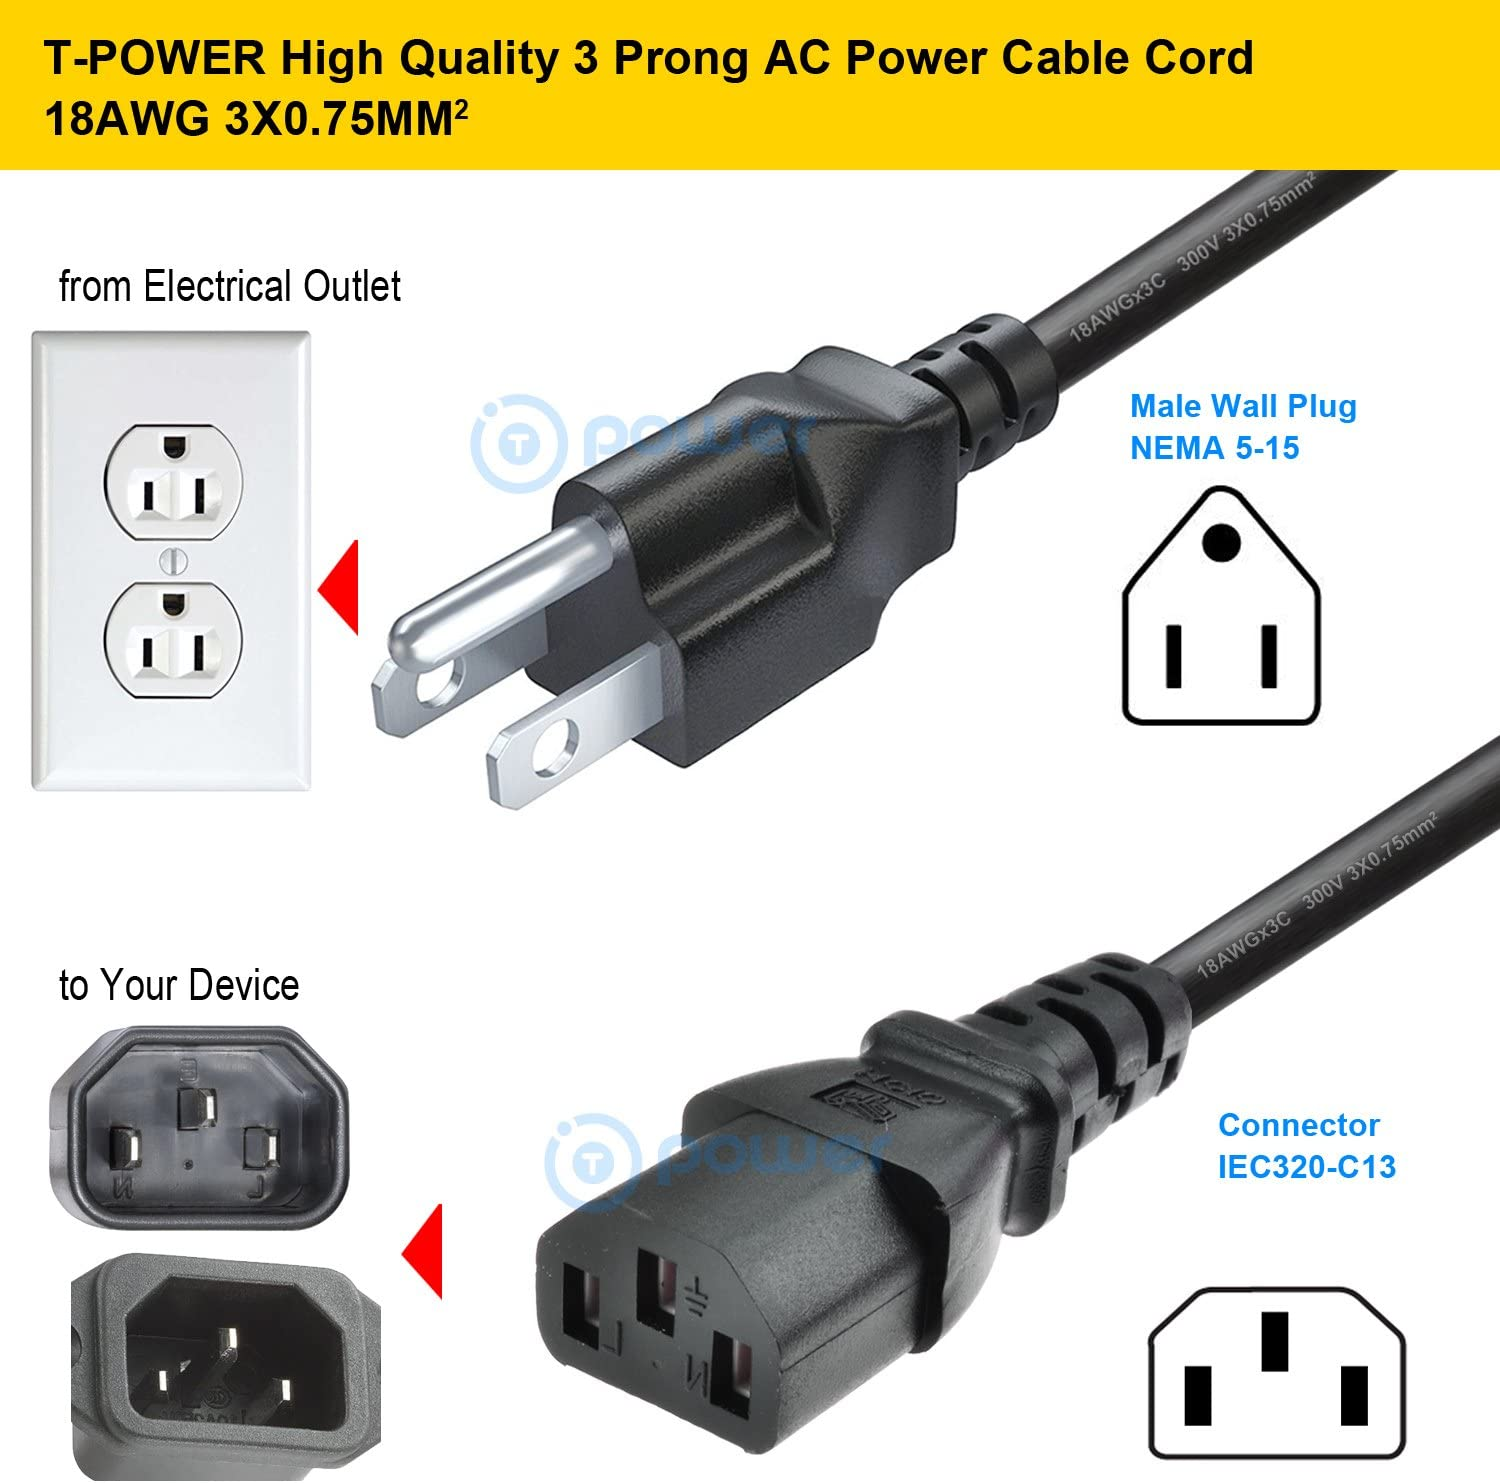 3 Prong NEMA 5-15P Male to IEC320 C13 Female Compatible with AOC Hisense TCL Hitachi Haier Element Sceptre RCA Westinghouse Sharp T POWER 18 AWG Universal Smart HDTV Monitor PC AC Supply Cable Cord